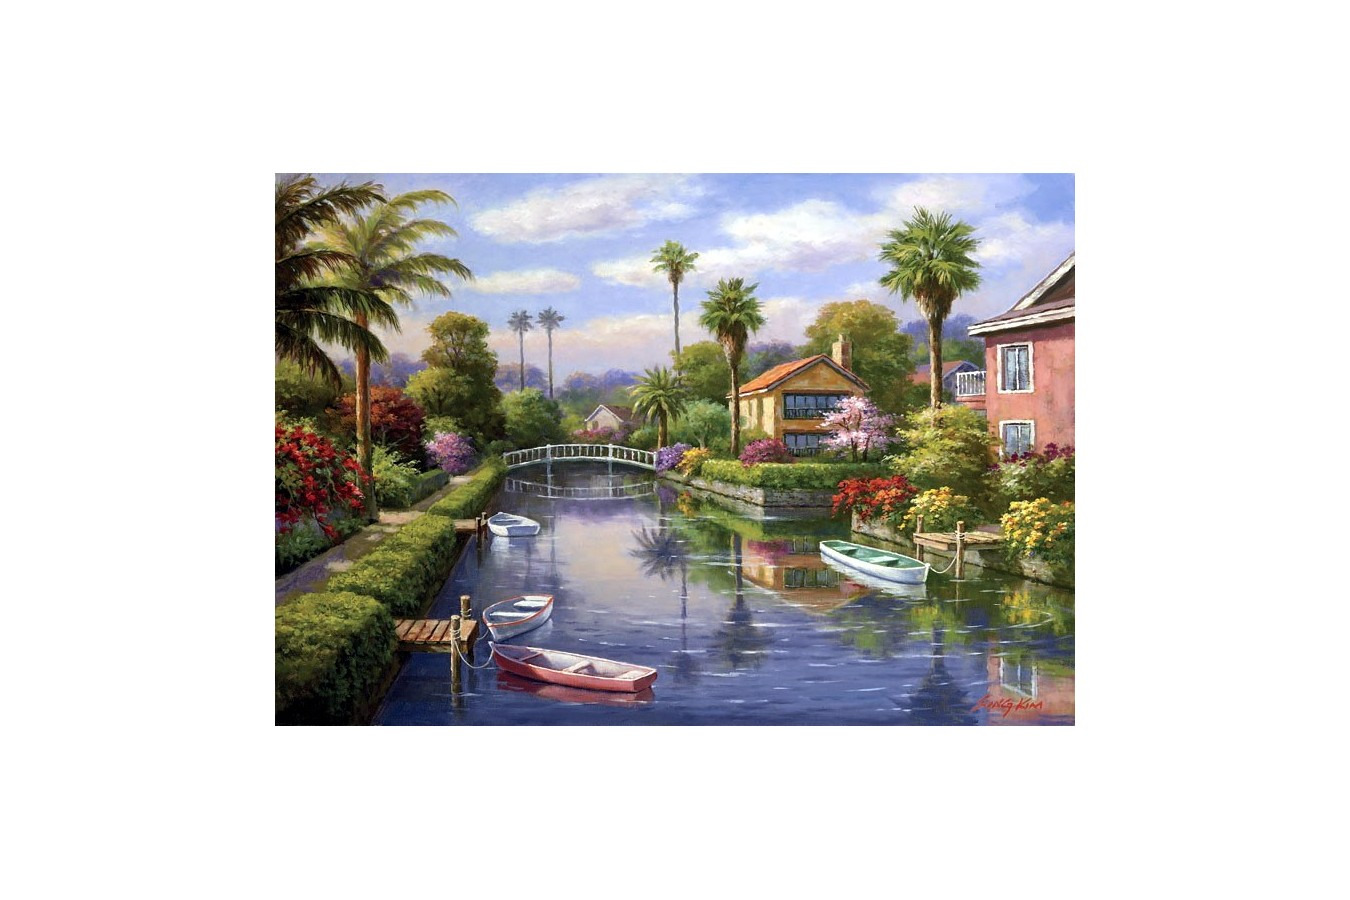 Puzzle Anatolian - Private Docks I, 2000 piese (3931)